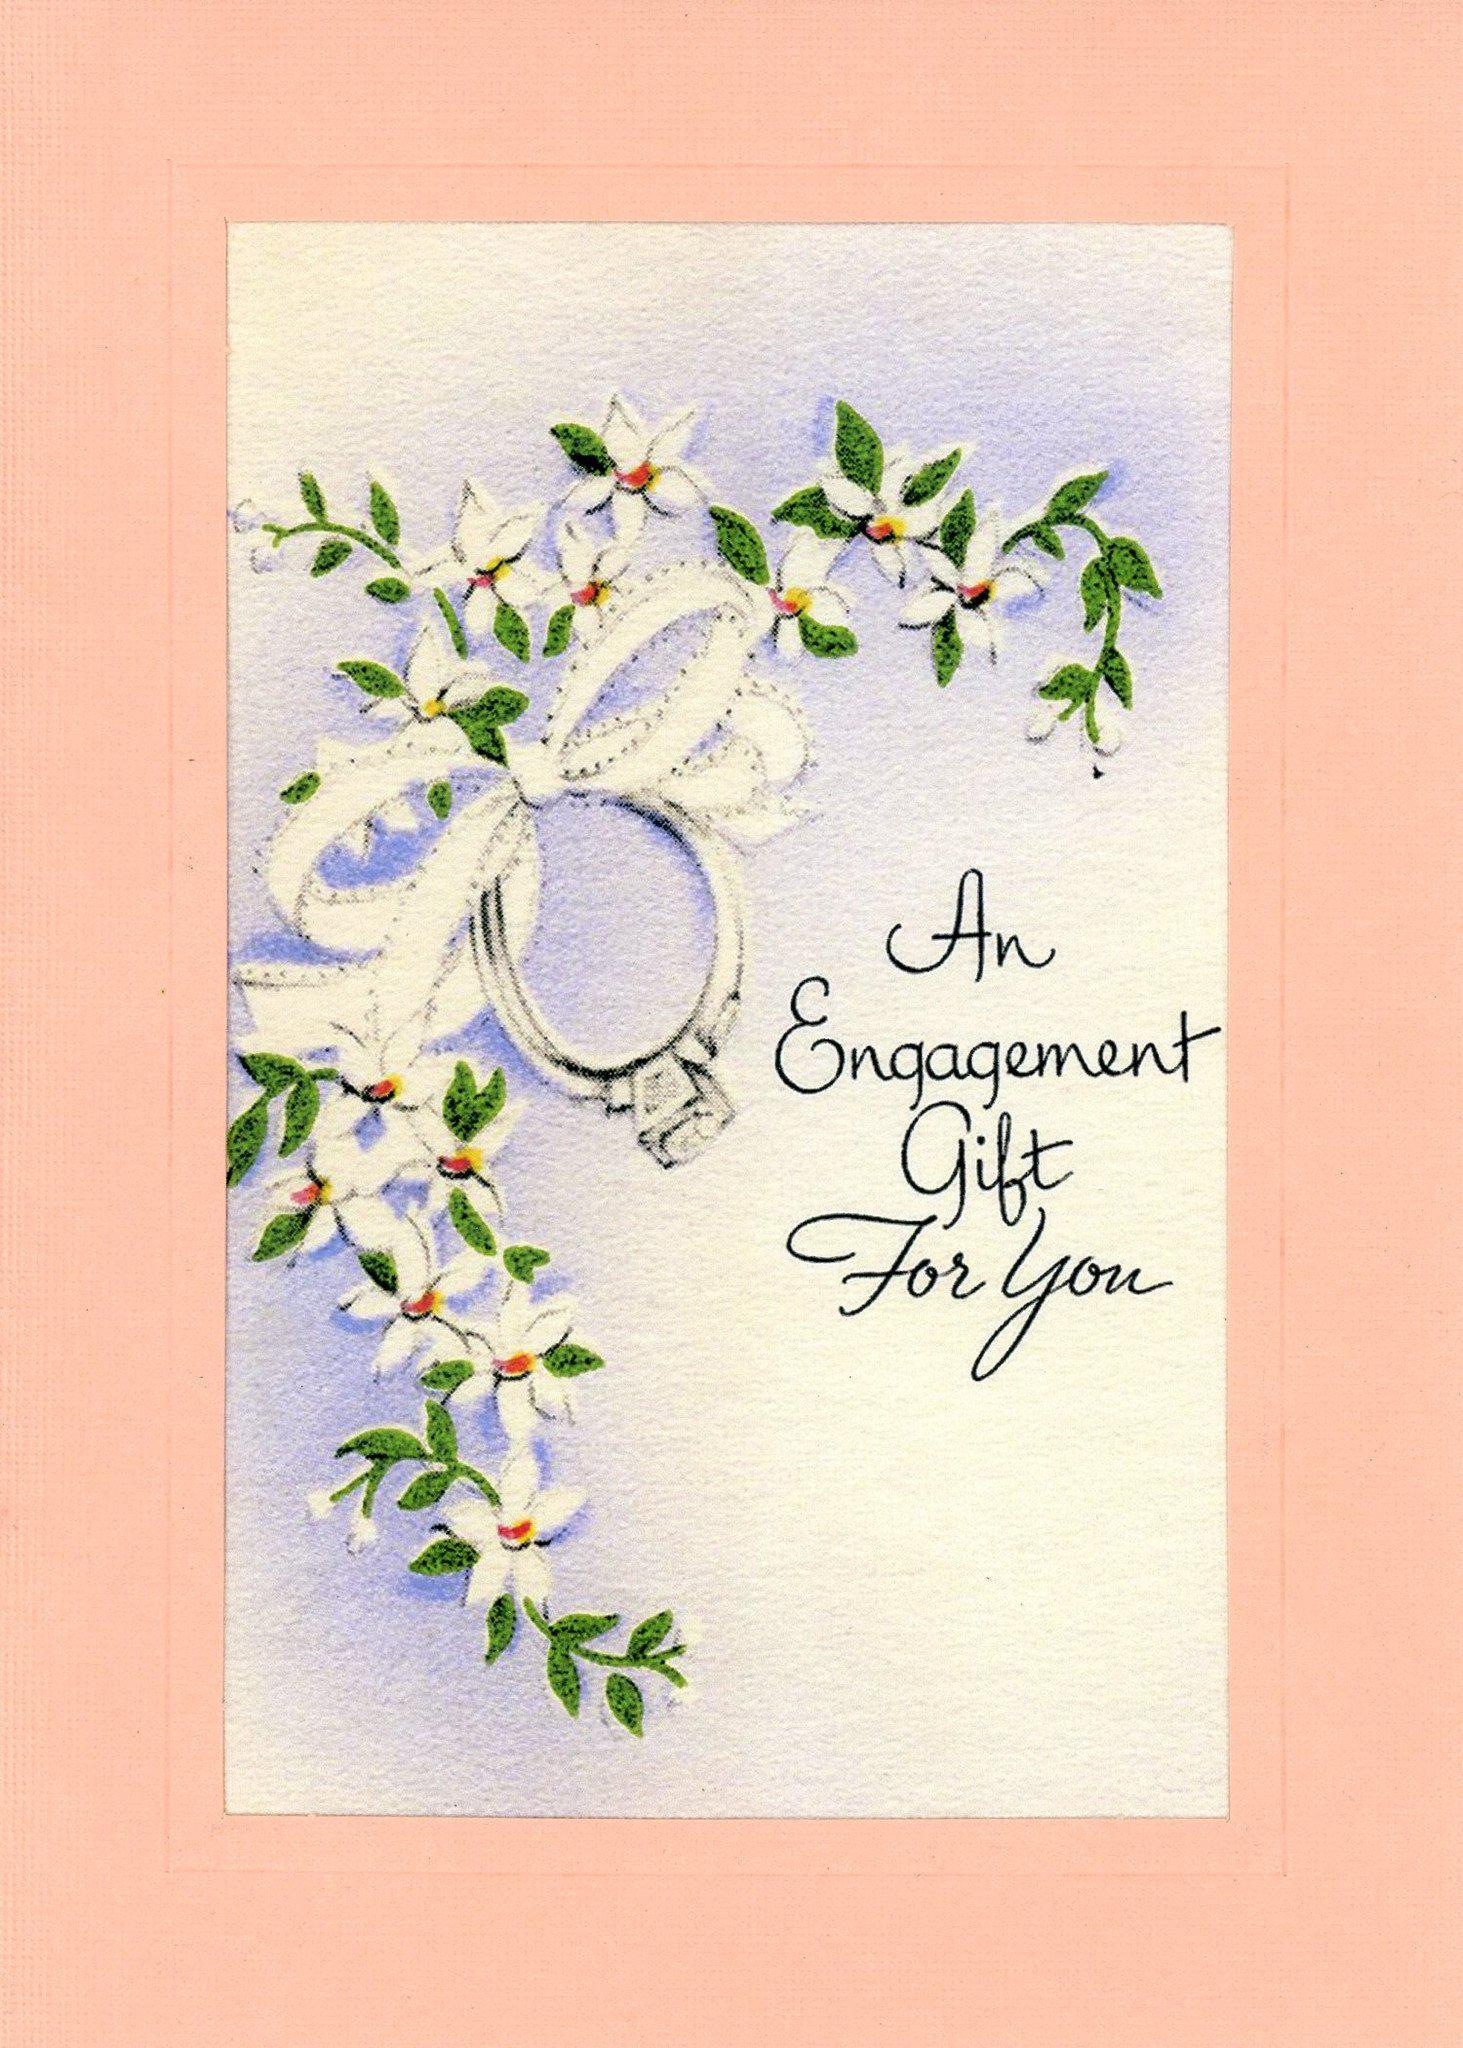 An Engagement Gift for You-Greetings from the Past-Plymouth Cards